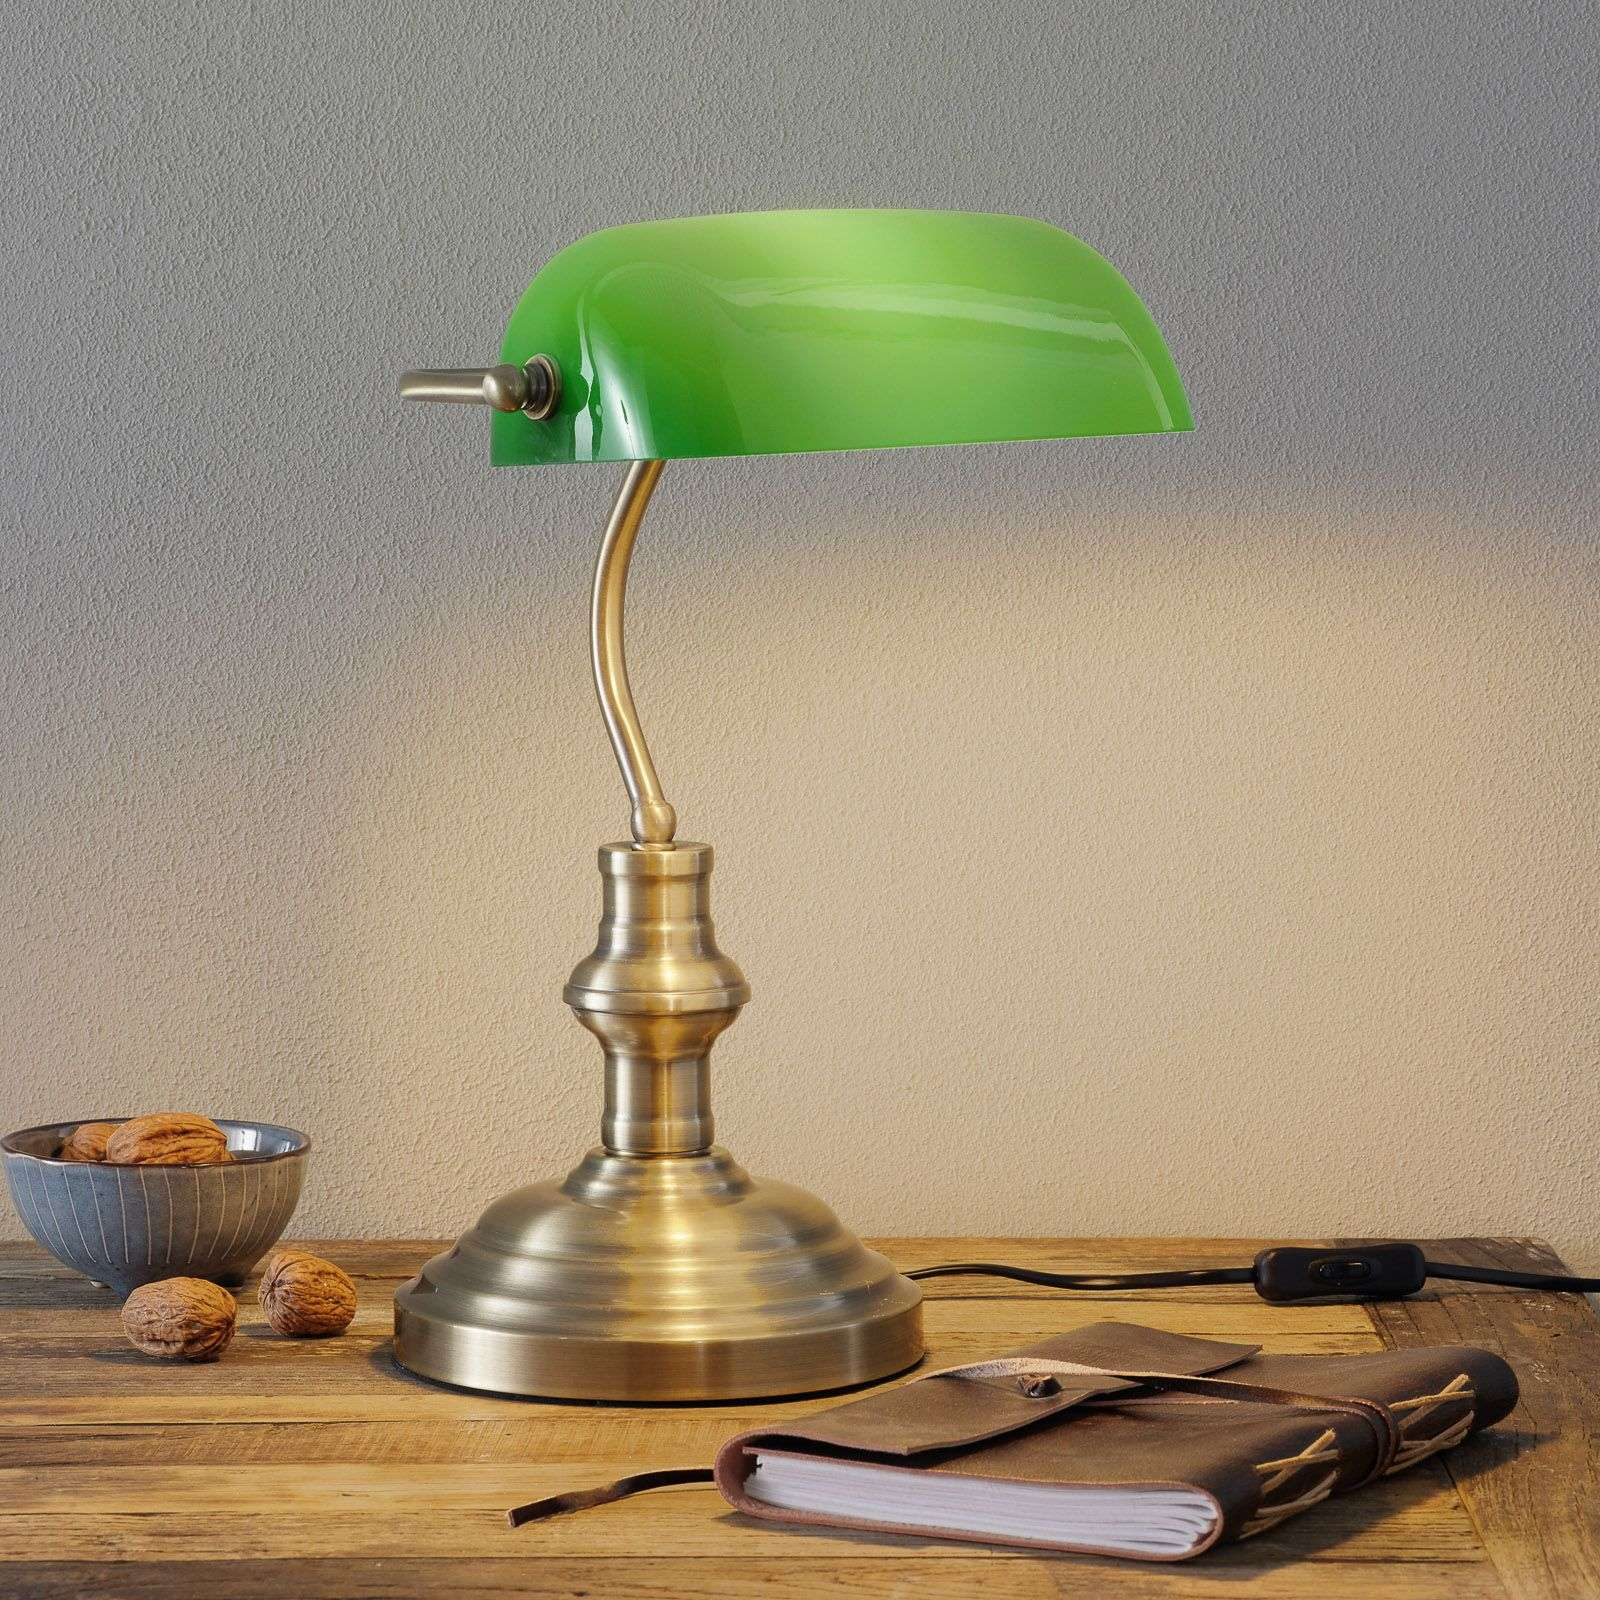 Bankers classic table lamp 42 cm green lights bankers classic table lamp 42 cm green 6057107 31 aloadofball